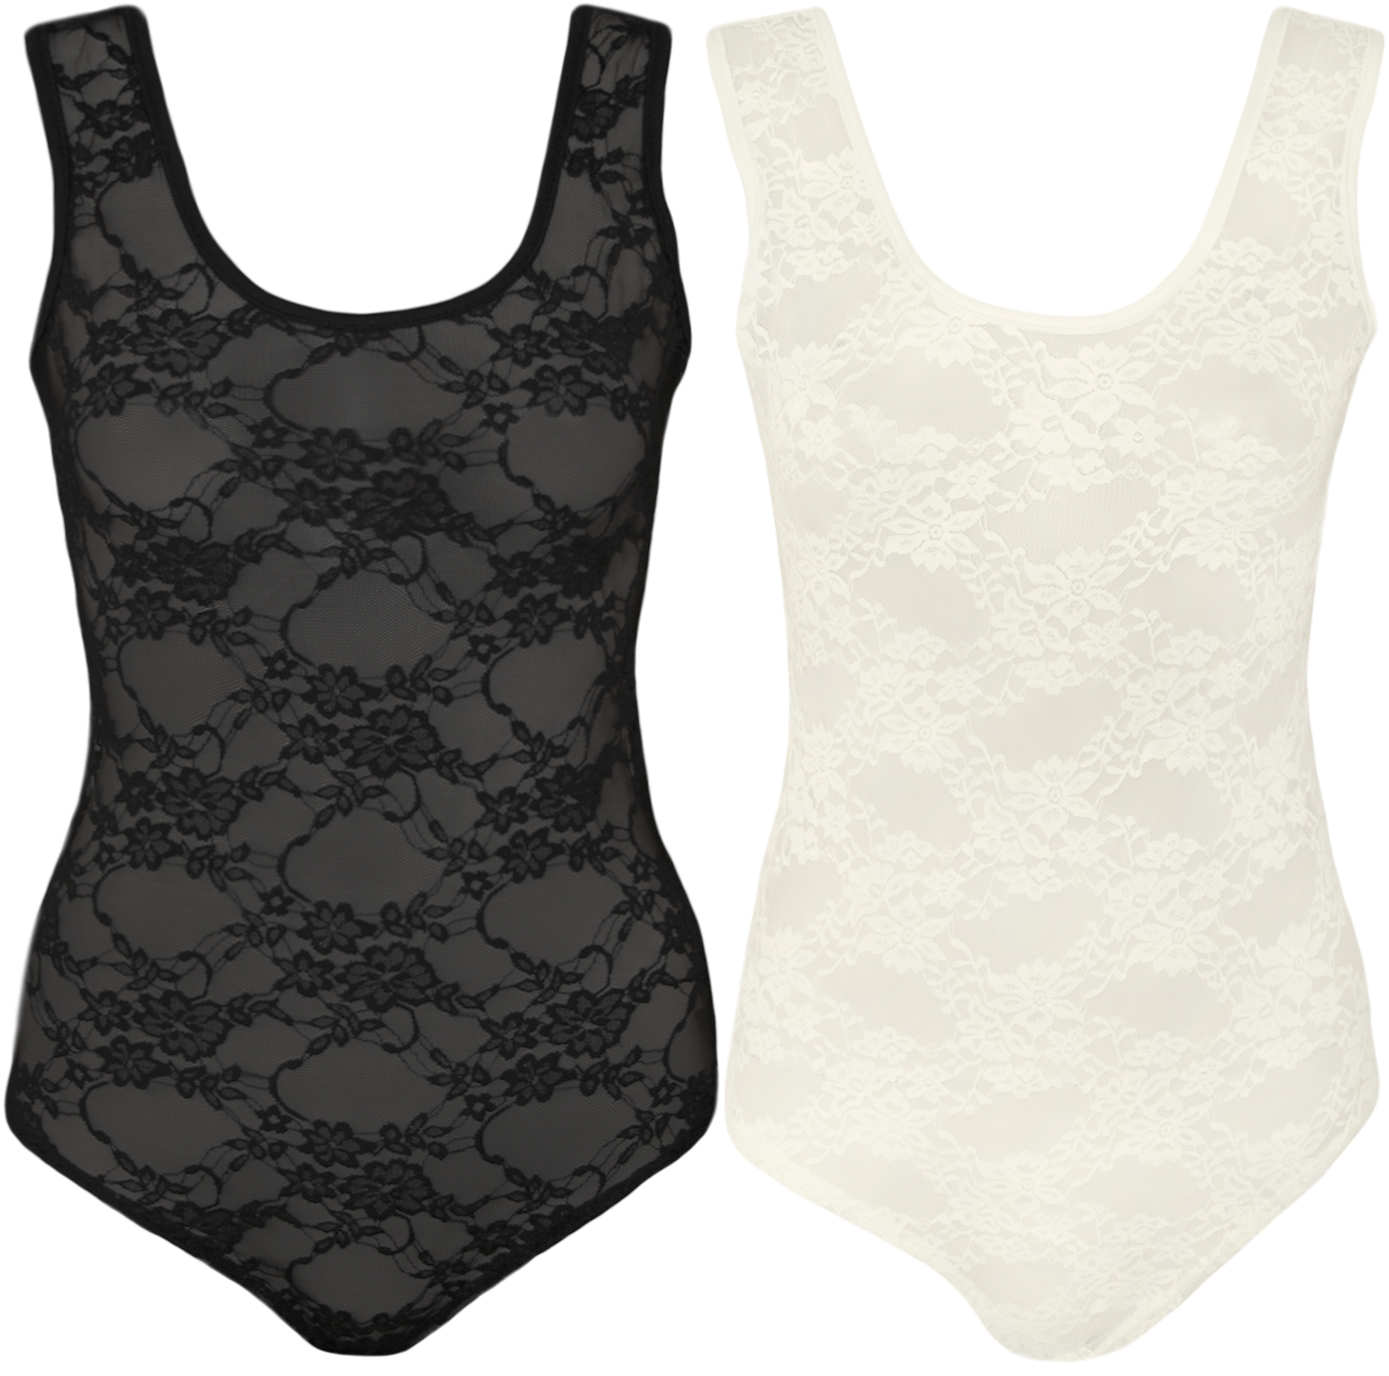 New-Womens-Floral-Lace-Scoop-Stretch-Sleeveless-Ladies-Leotard-Top-Bodysuit-8-14